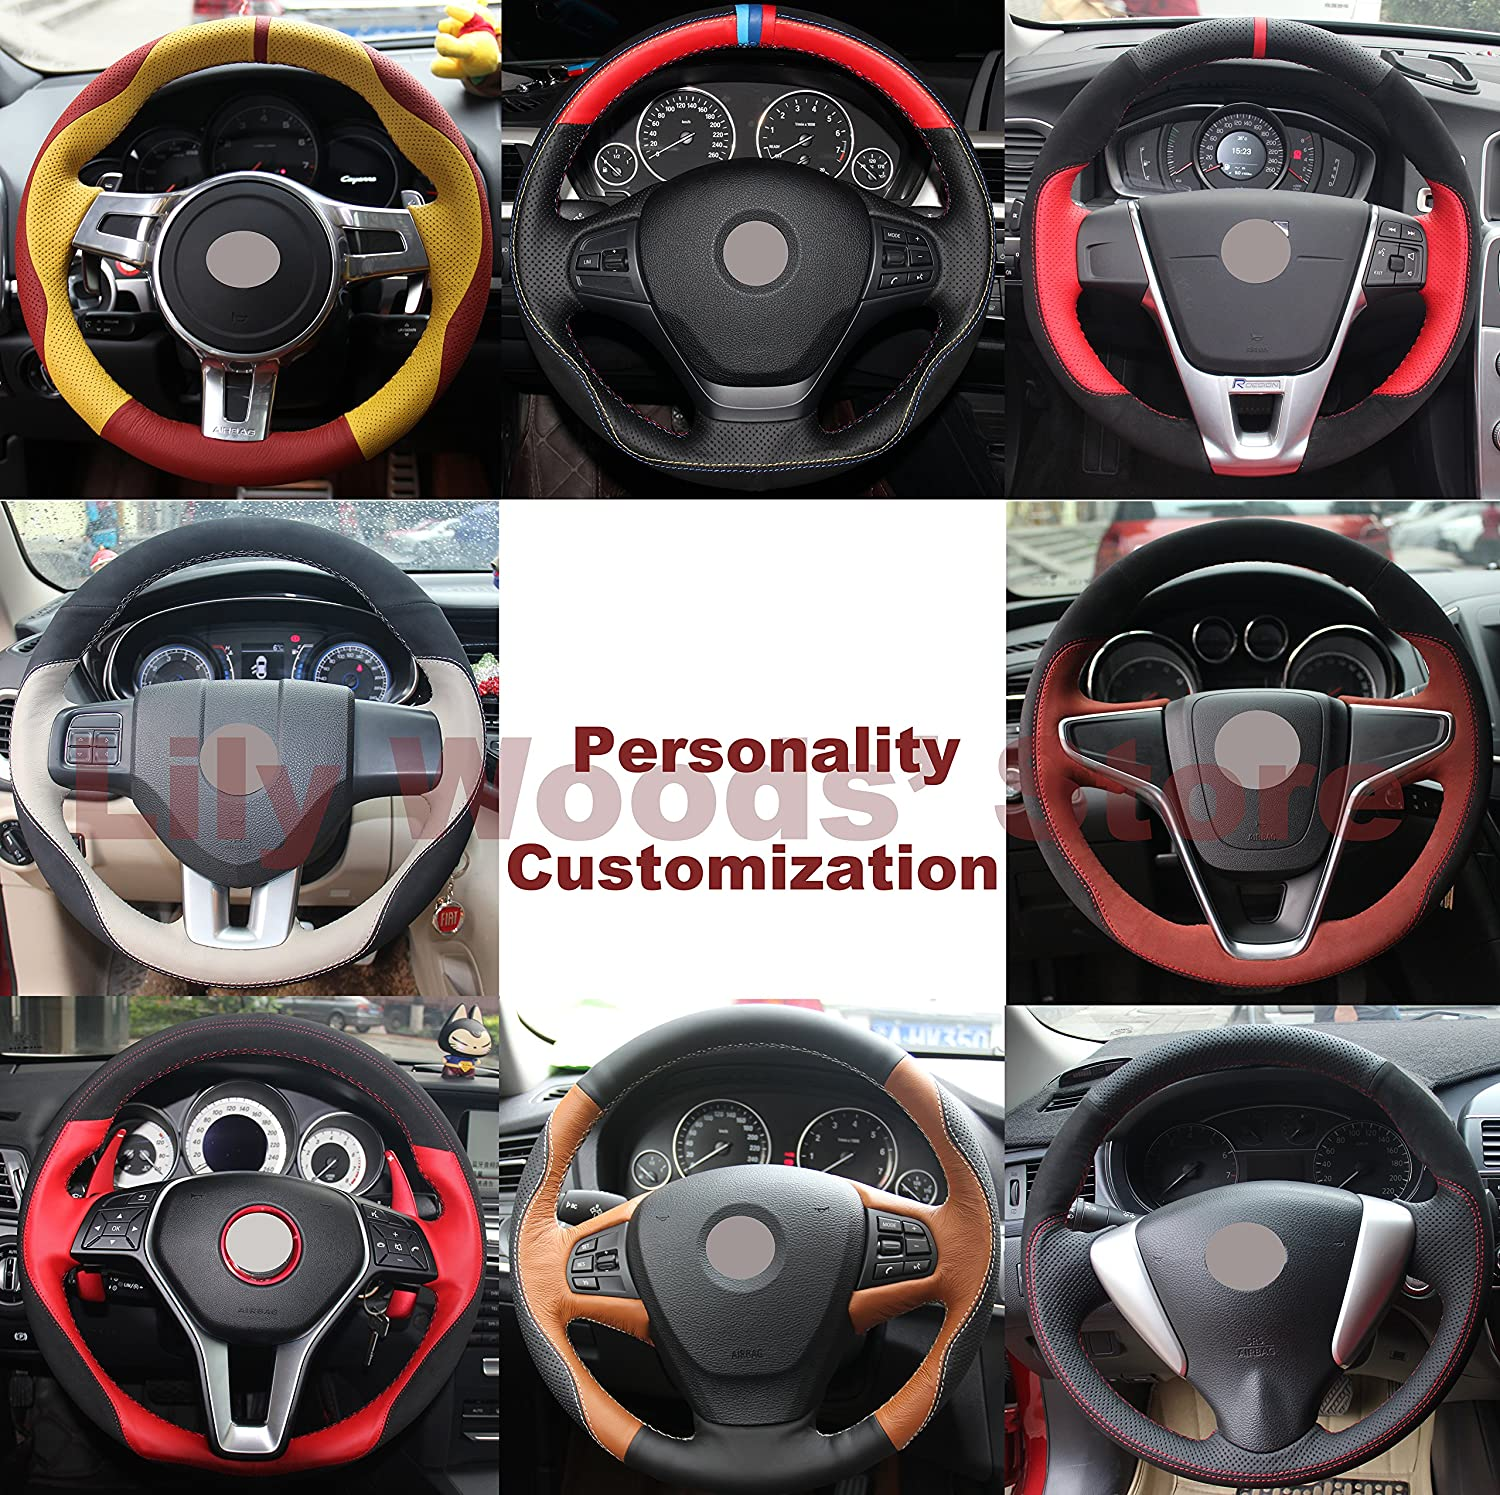 Loncky Black Suede Steering Wheel Cover for BMW Gran Turismo 328GT 330GT 335GT 340GT 535GT 550GT //BMW Gran Coupe 428 430 435 440 640 650 M6 Gran Coupe lfy-0017